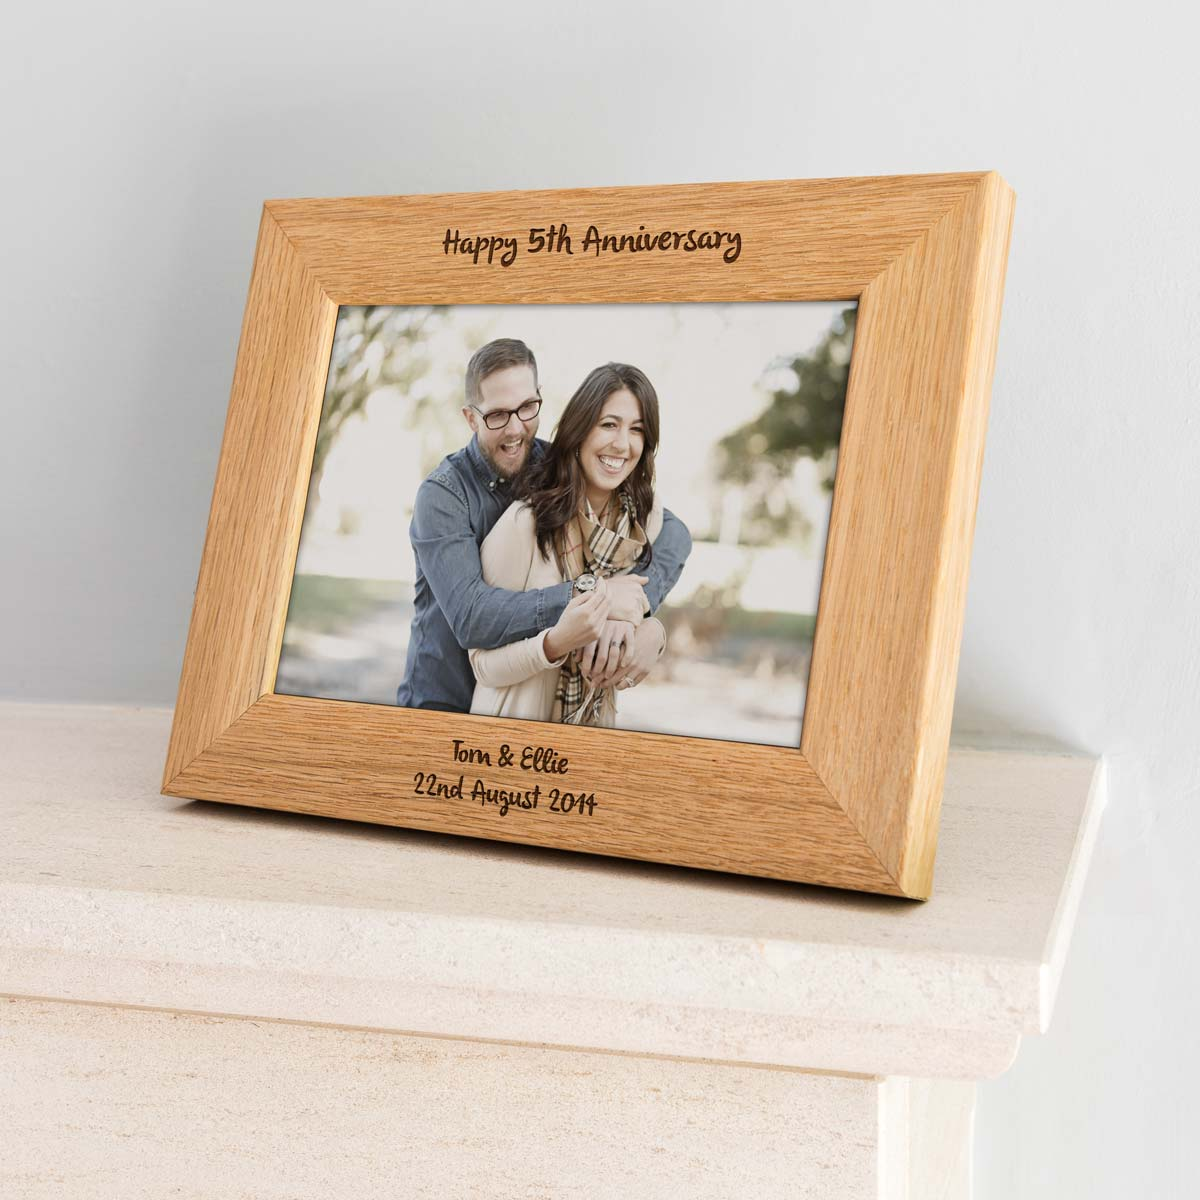 Personalised Happy 5th Anniversary Photo Frame